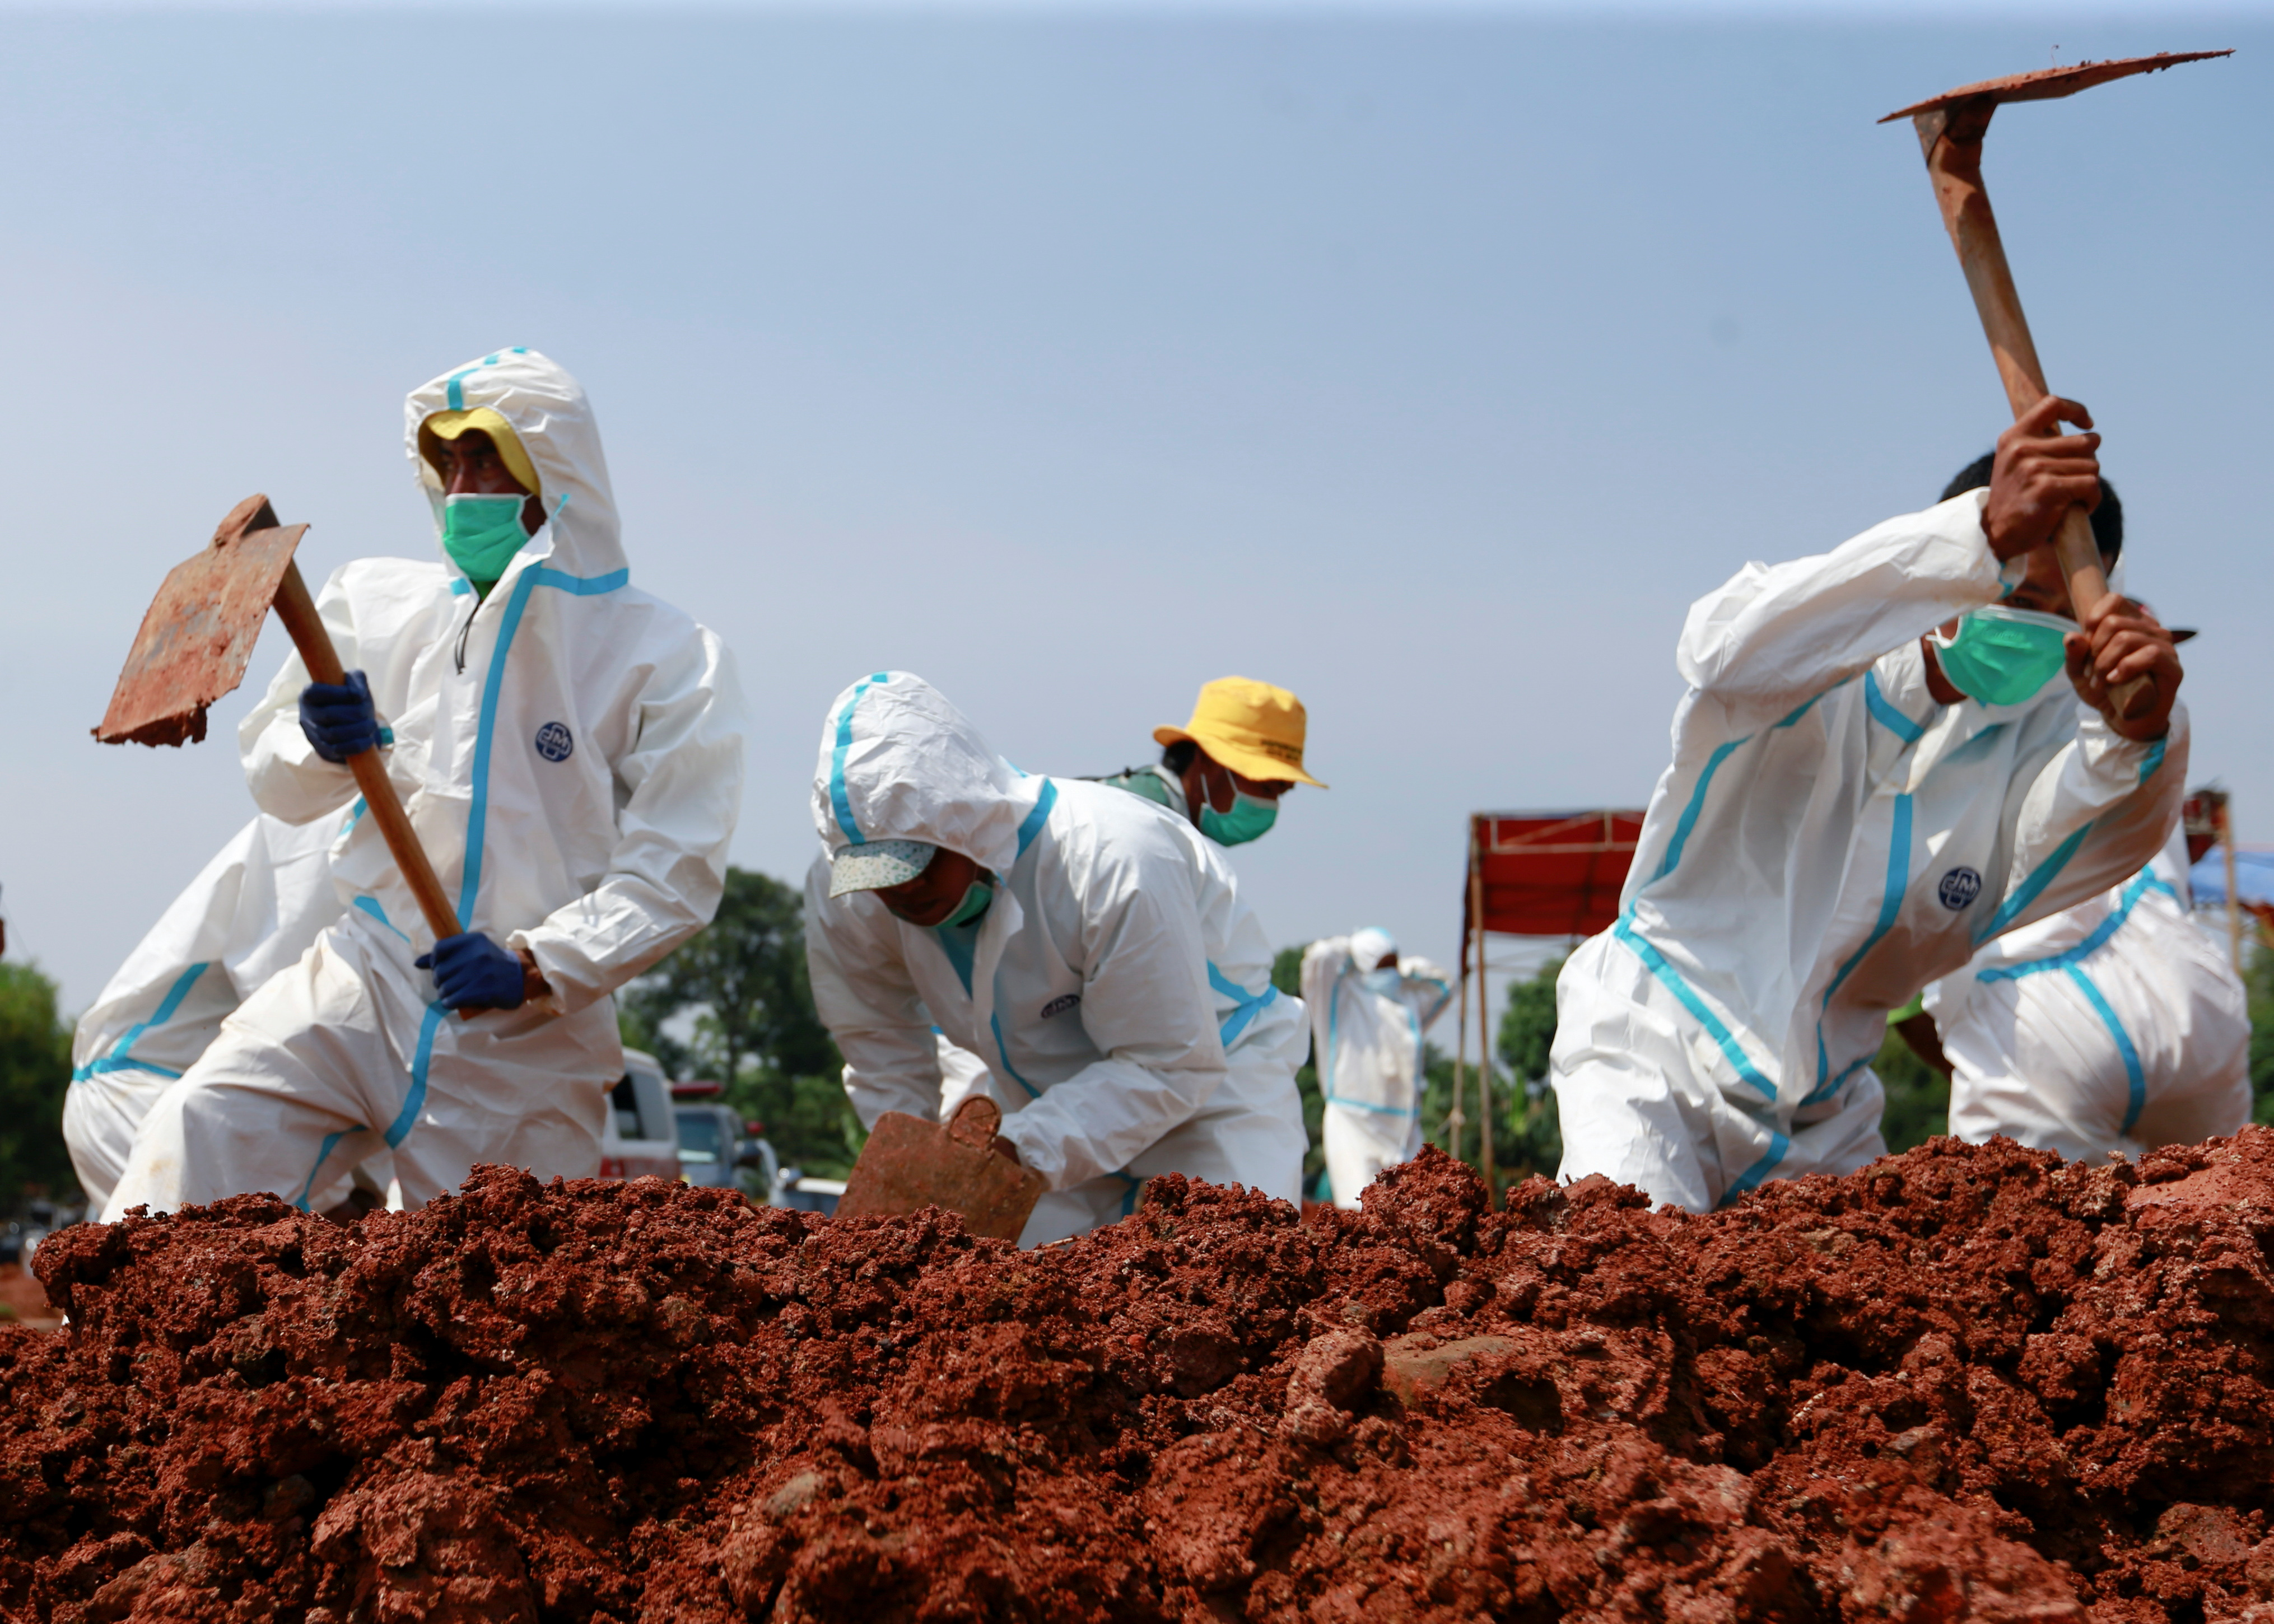 Gravediggers wearing personal protective equipment (PPE) bury a coffin at a Muslim burial area provided by the government for coronavirus disease (COVID-19) victims in Bekasi, on the outskirts of Jakarta, Indonesia, July 8, 2021. REUTERS/Ajeng Dinar Ulfiana